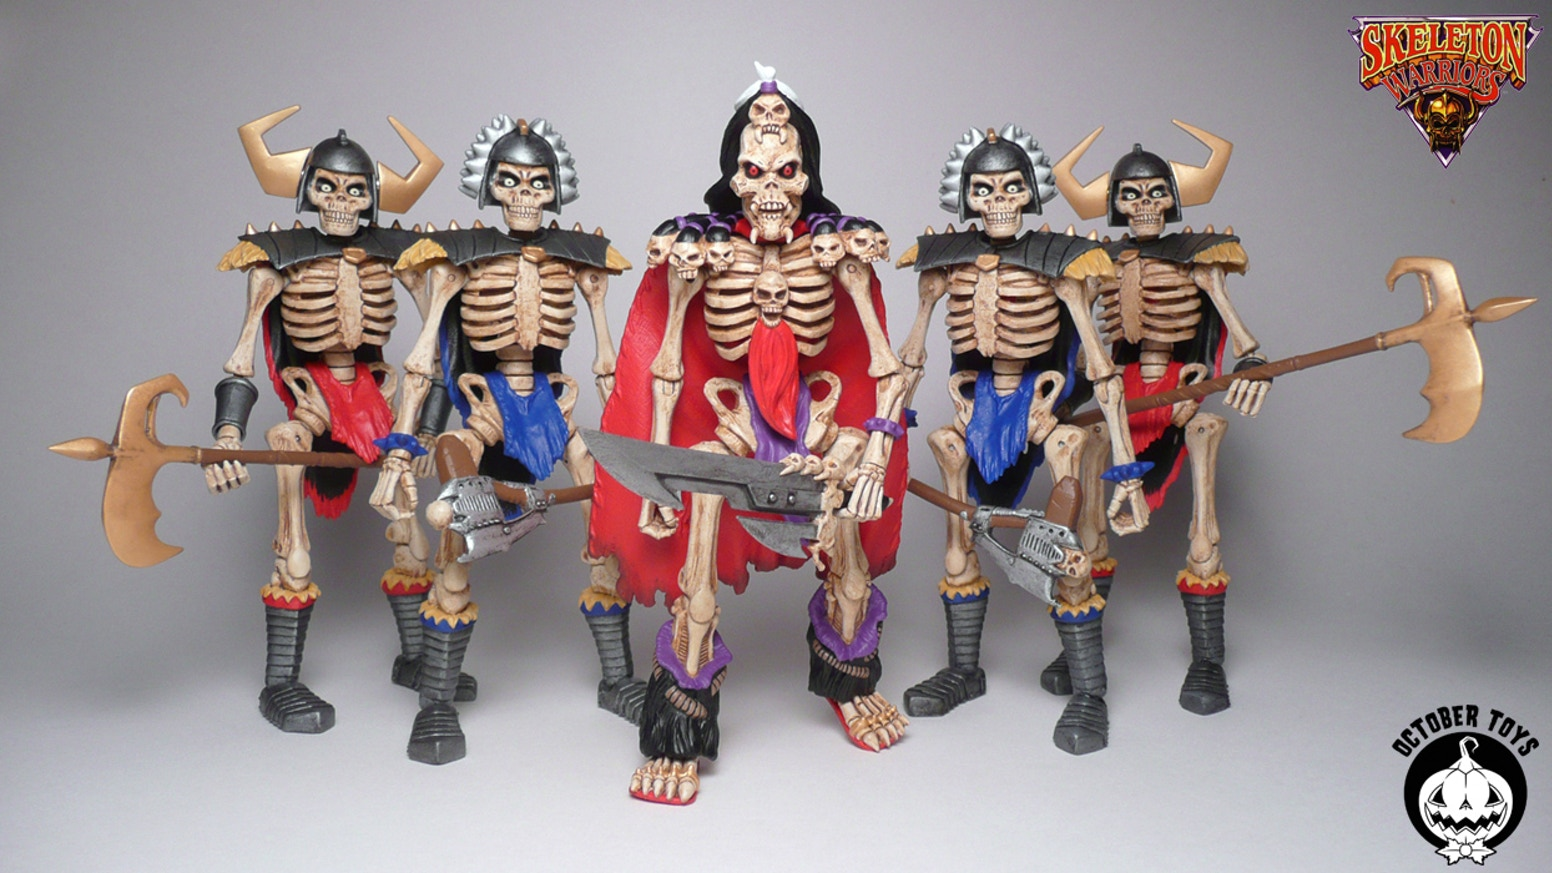 "Skeleton Warriors 5"" fully articulated (26 points), customizable, Glyos compatible Baron Dark and Skeleton action figures!"